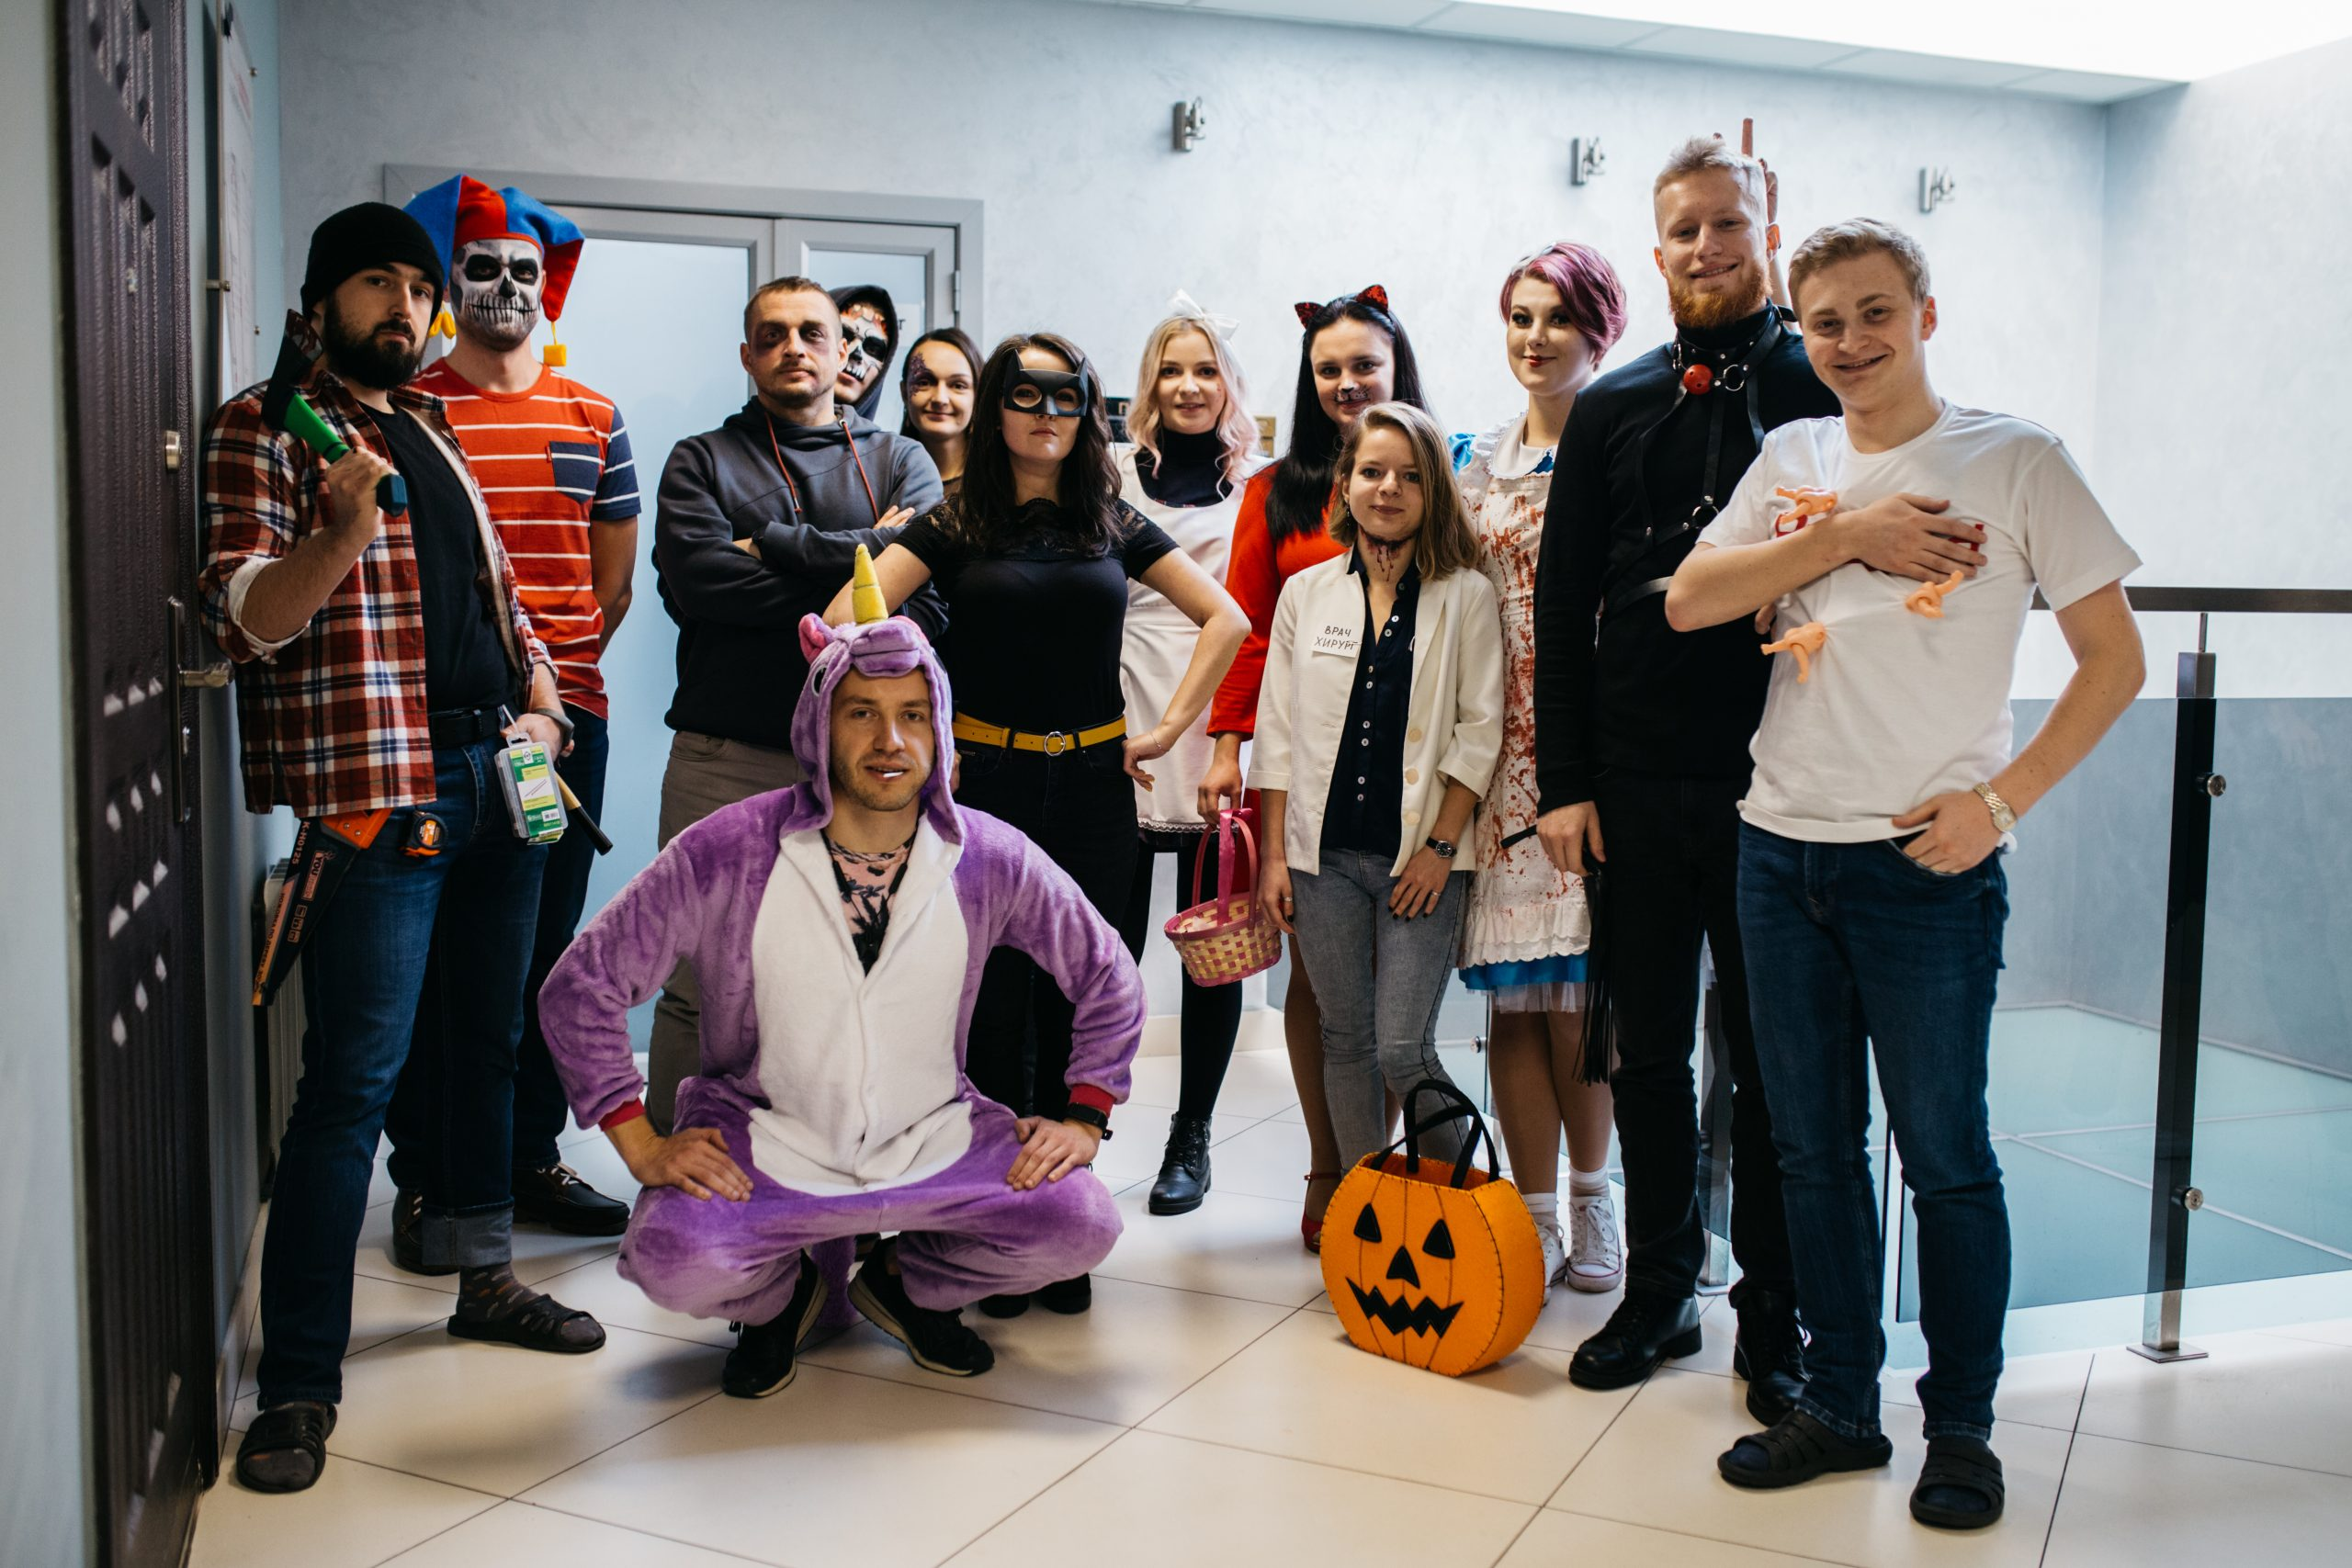 Smart IT team in creative Halloween outfits at the office